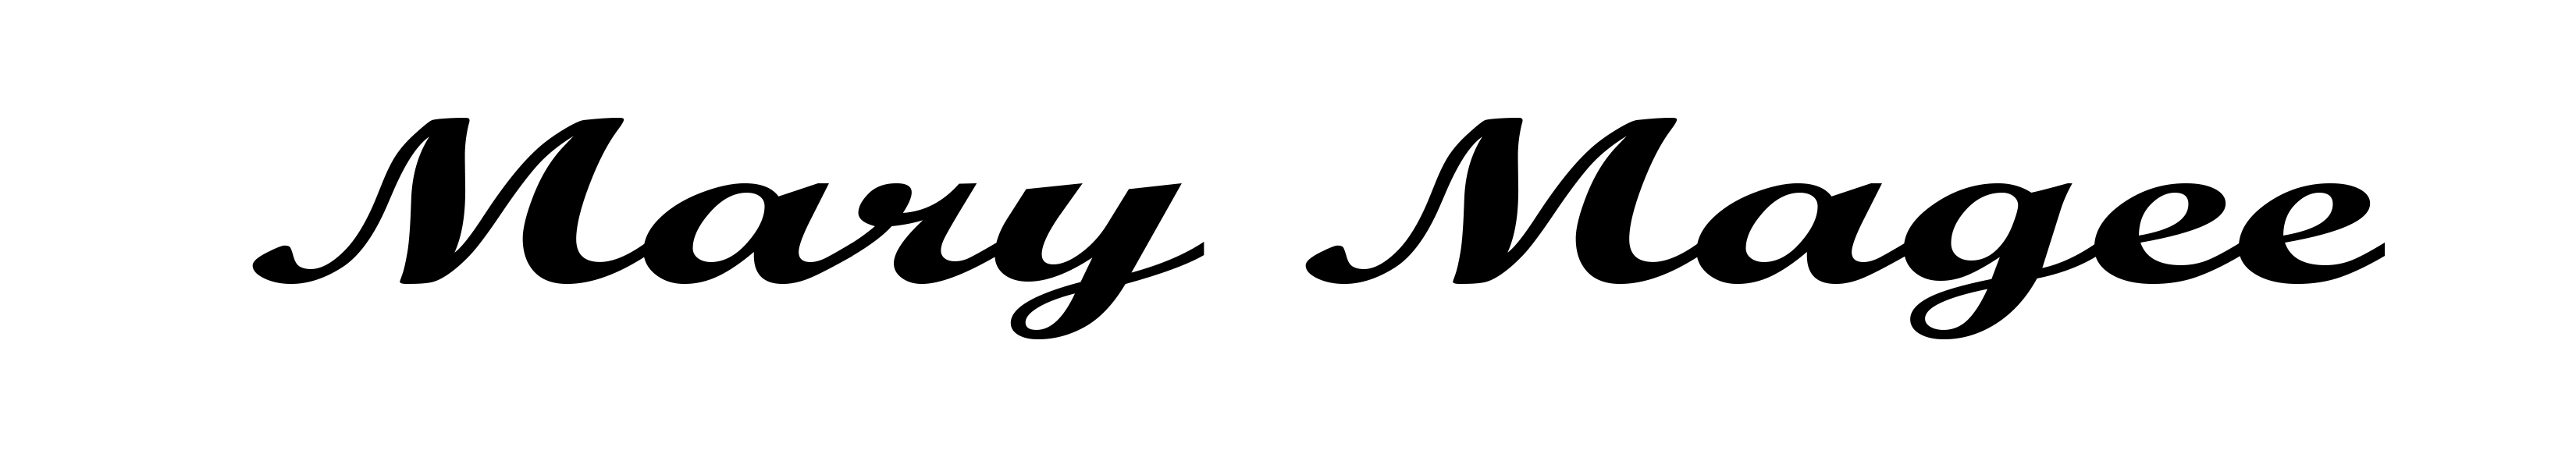 Mary Magee's Signature